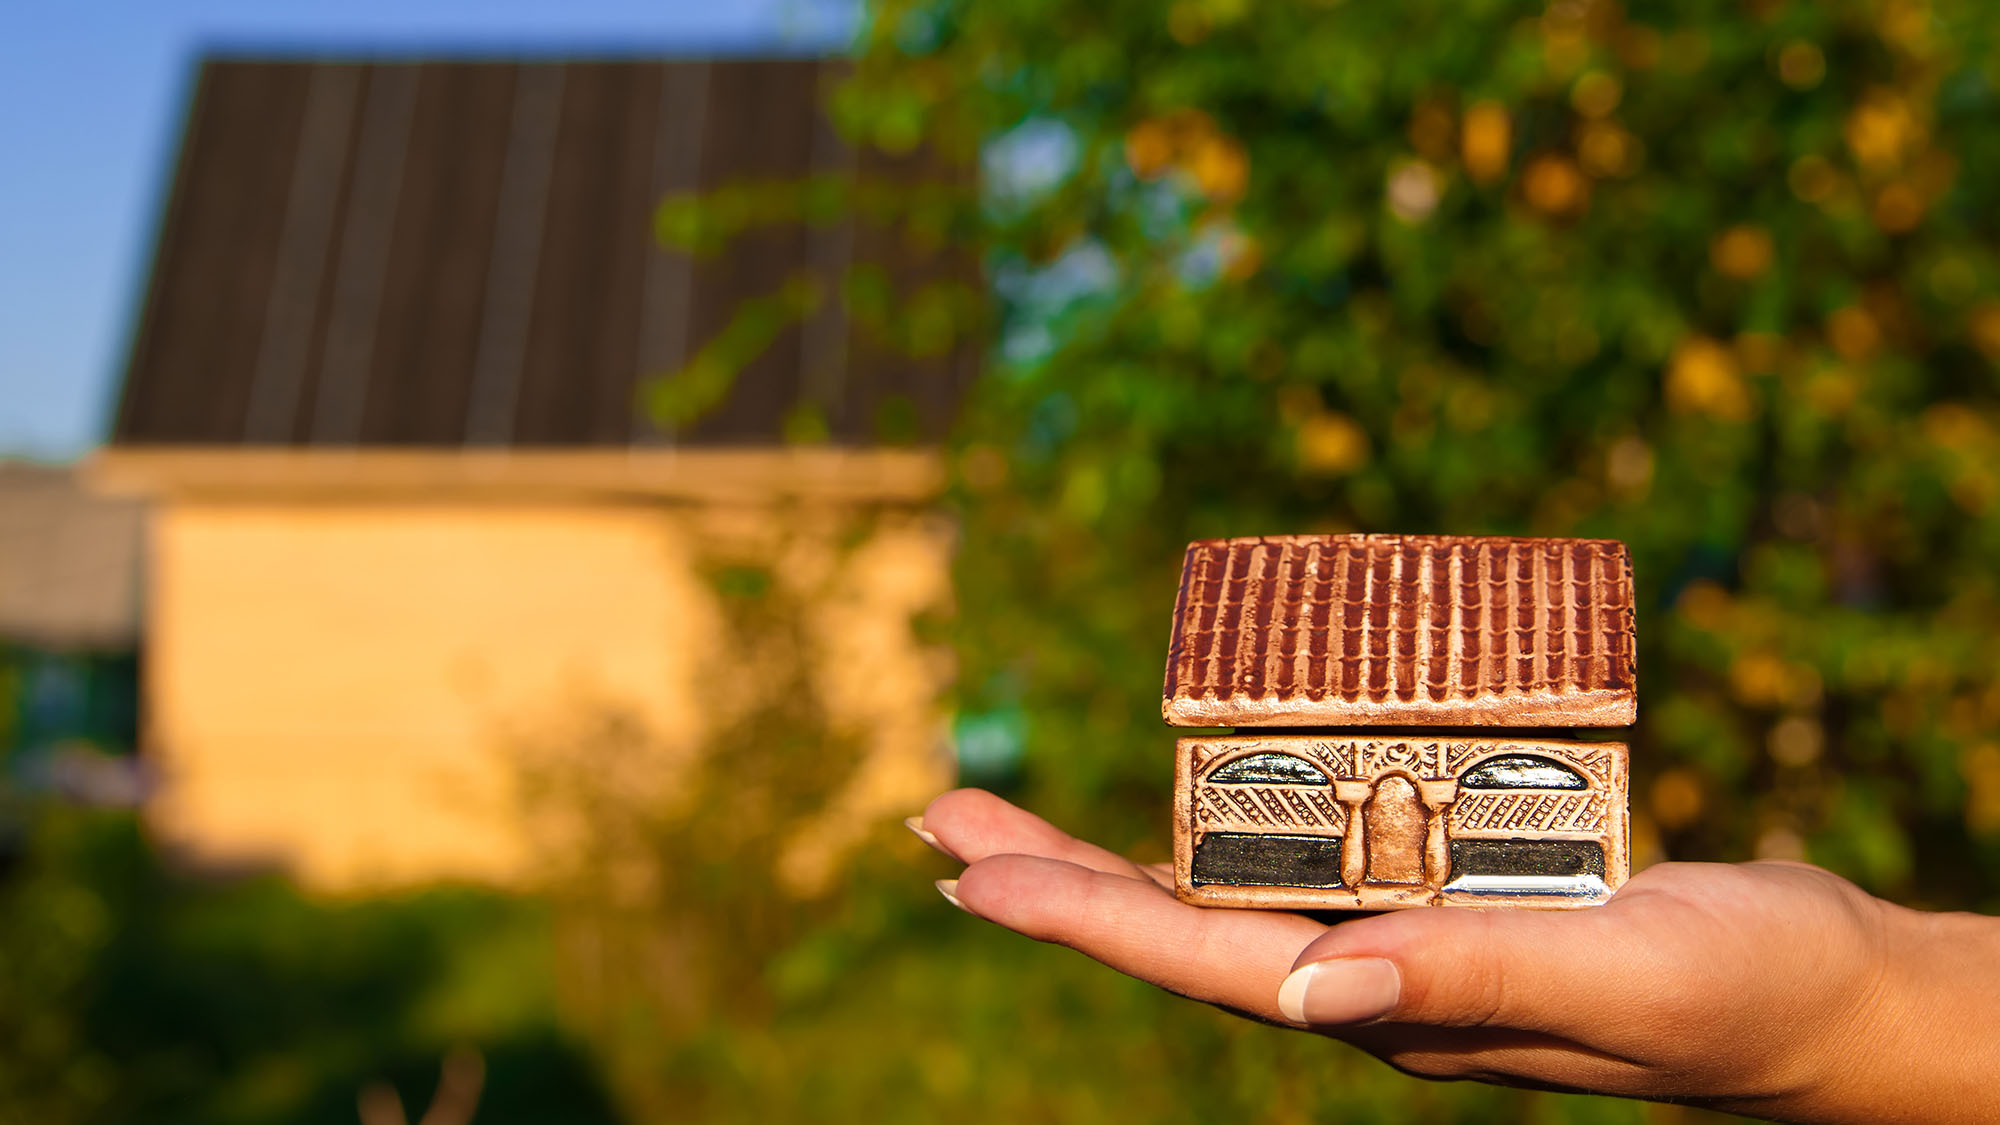 6 questions you must ask yourself before downsizing